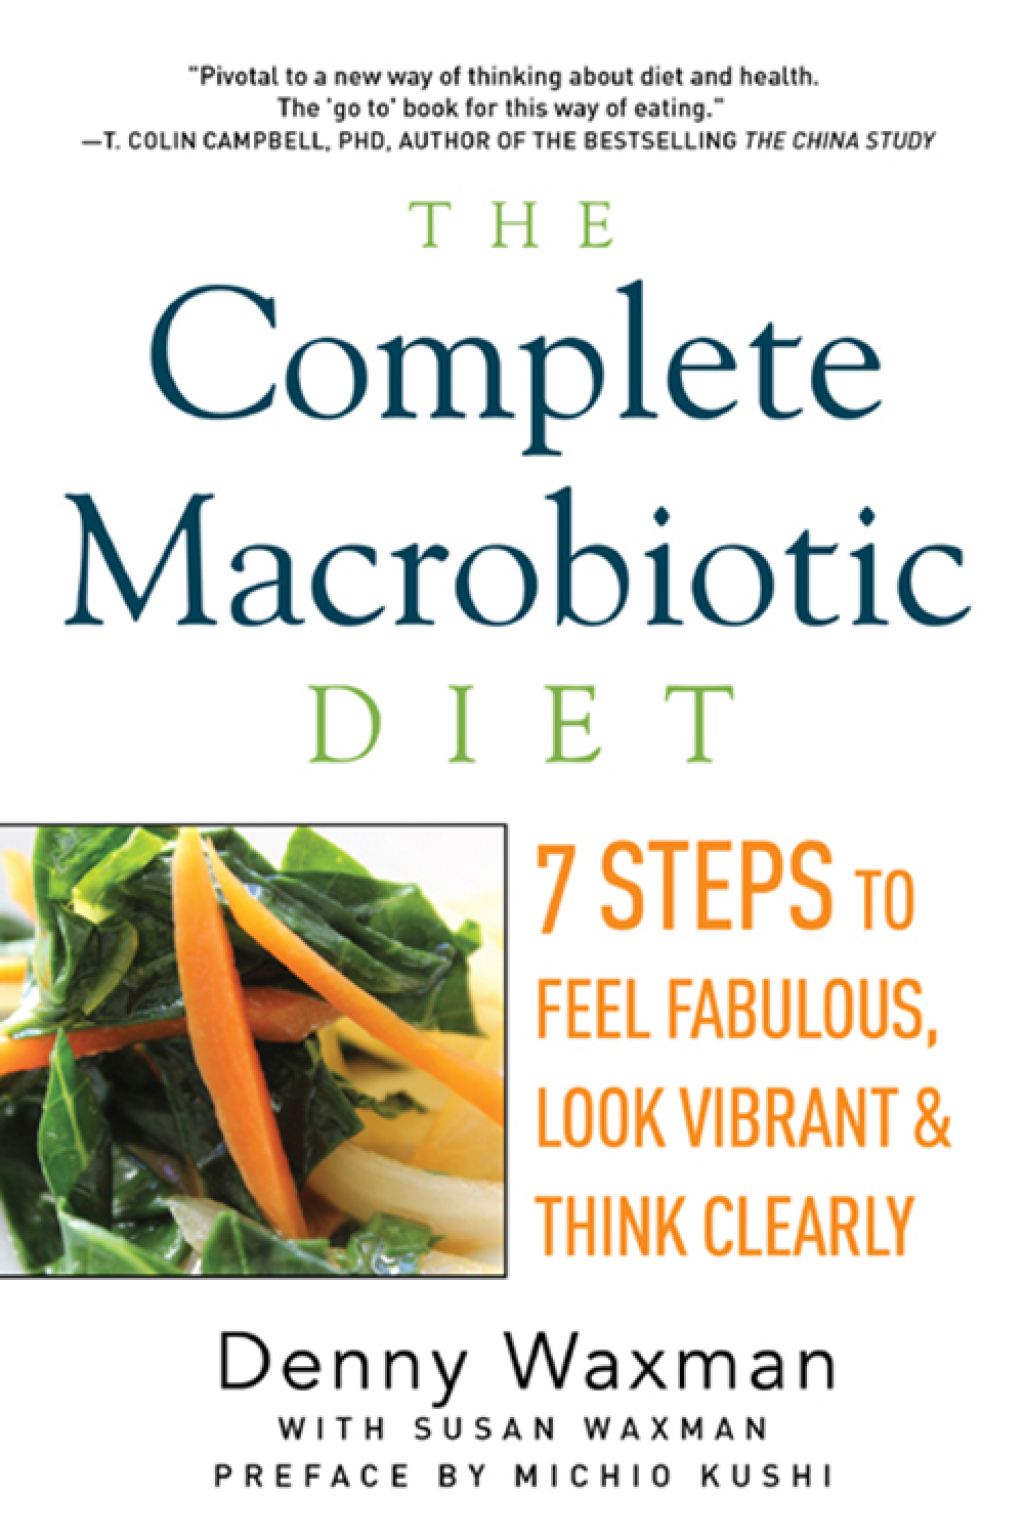 The Complete Macrobiotic Diet: 7 Steps to Feel Fabulous, Look Vibrant, and Think Clearly (ebook) eBooks